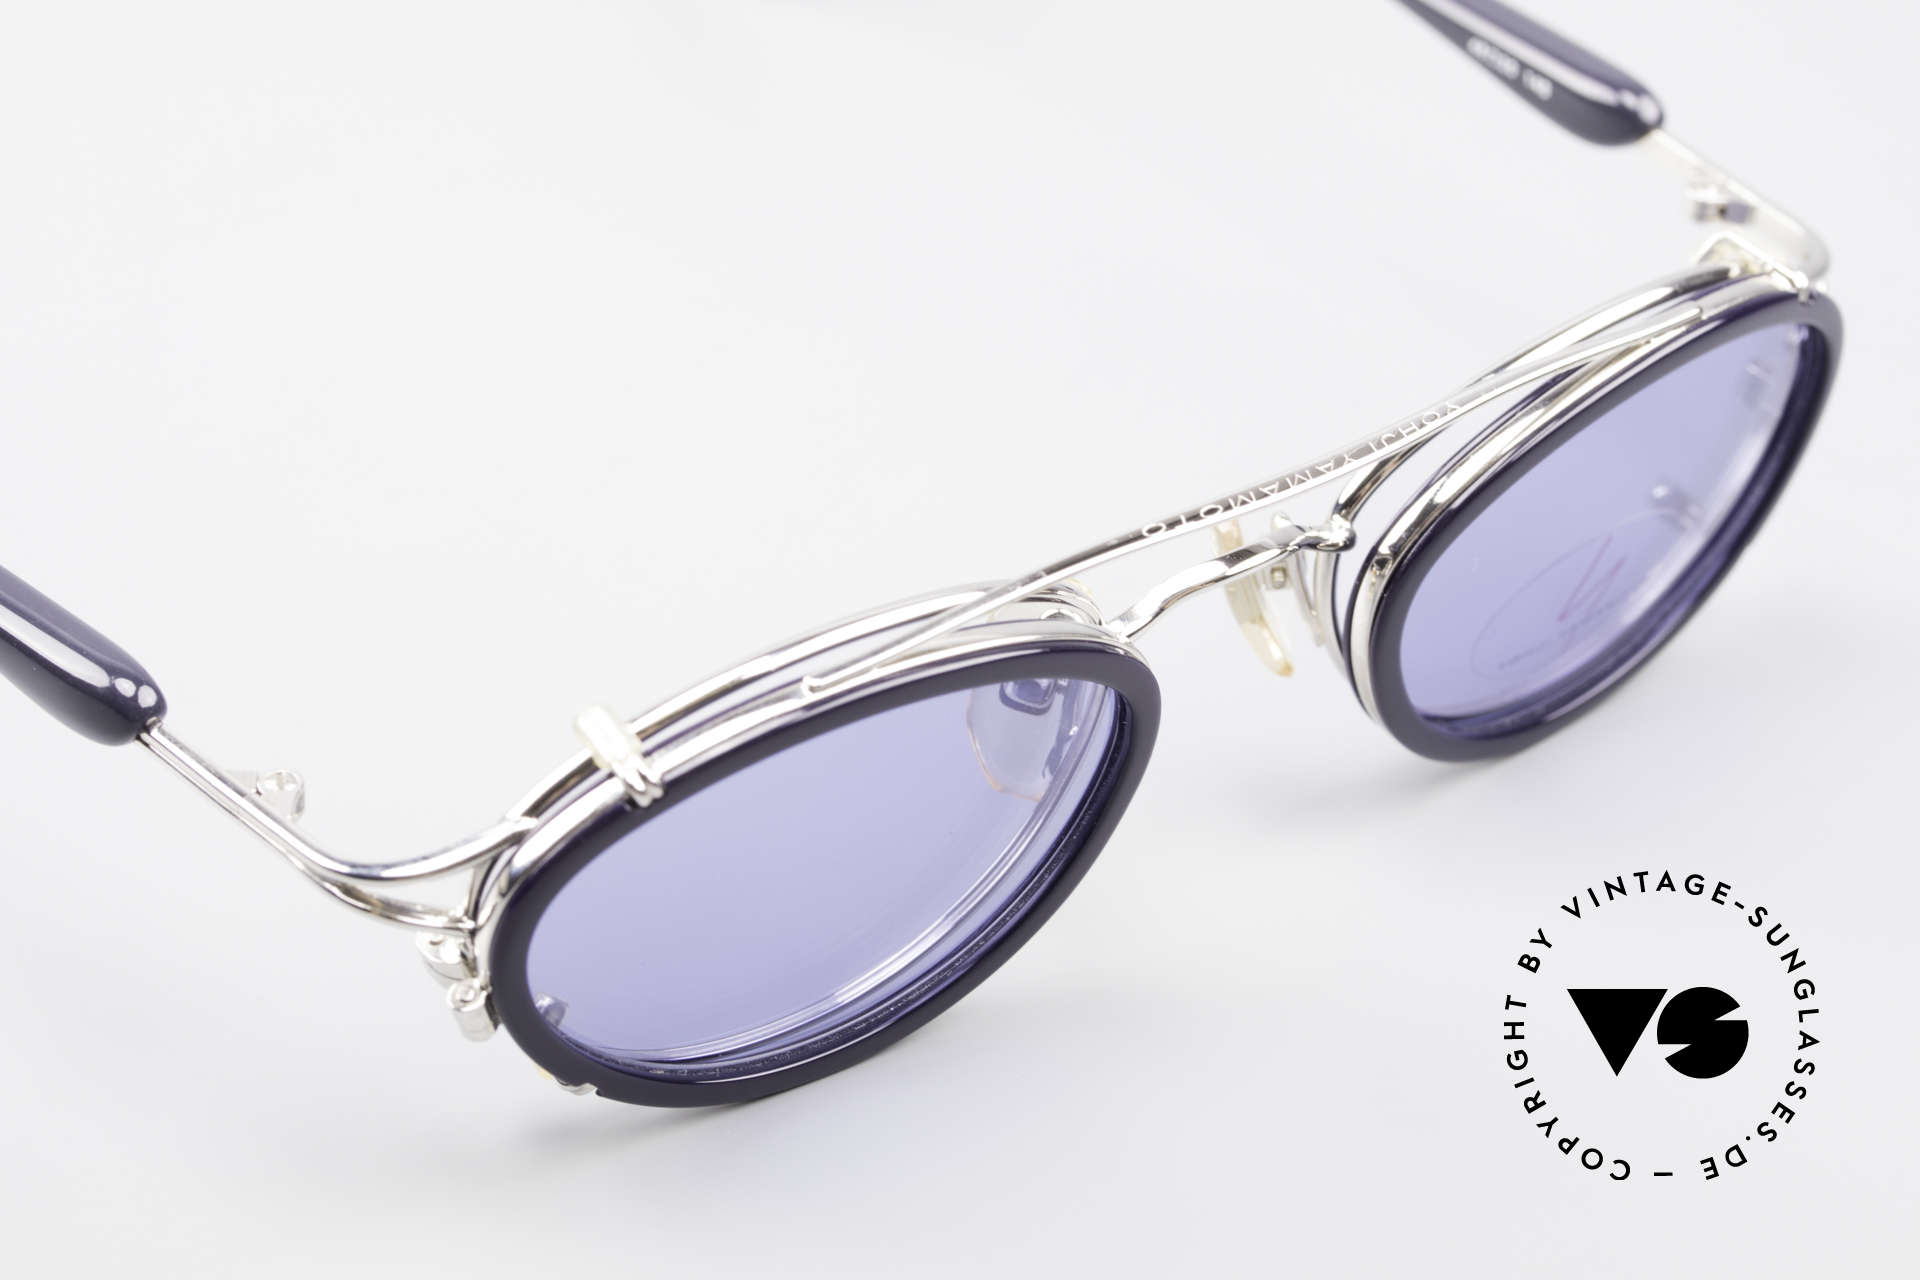 Yohji Yamamoto 51-7210 Clip-On 90's No Retro Shades, frame can be glazed with optical lenses of any kind, Made for Men and Women